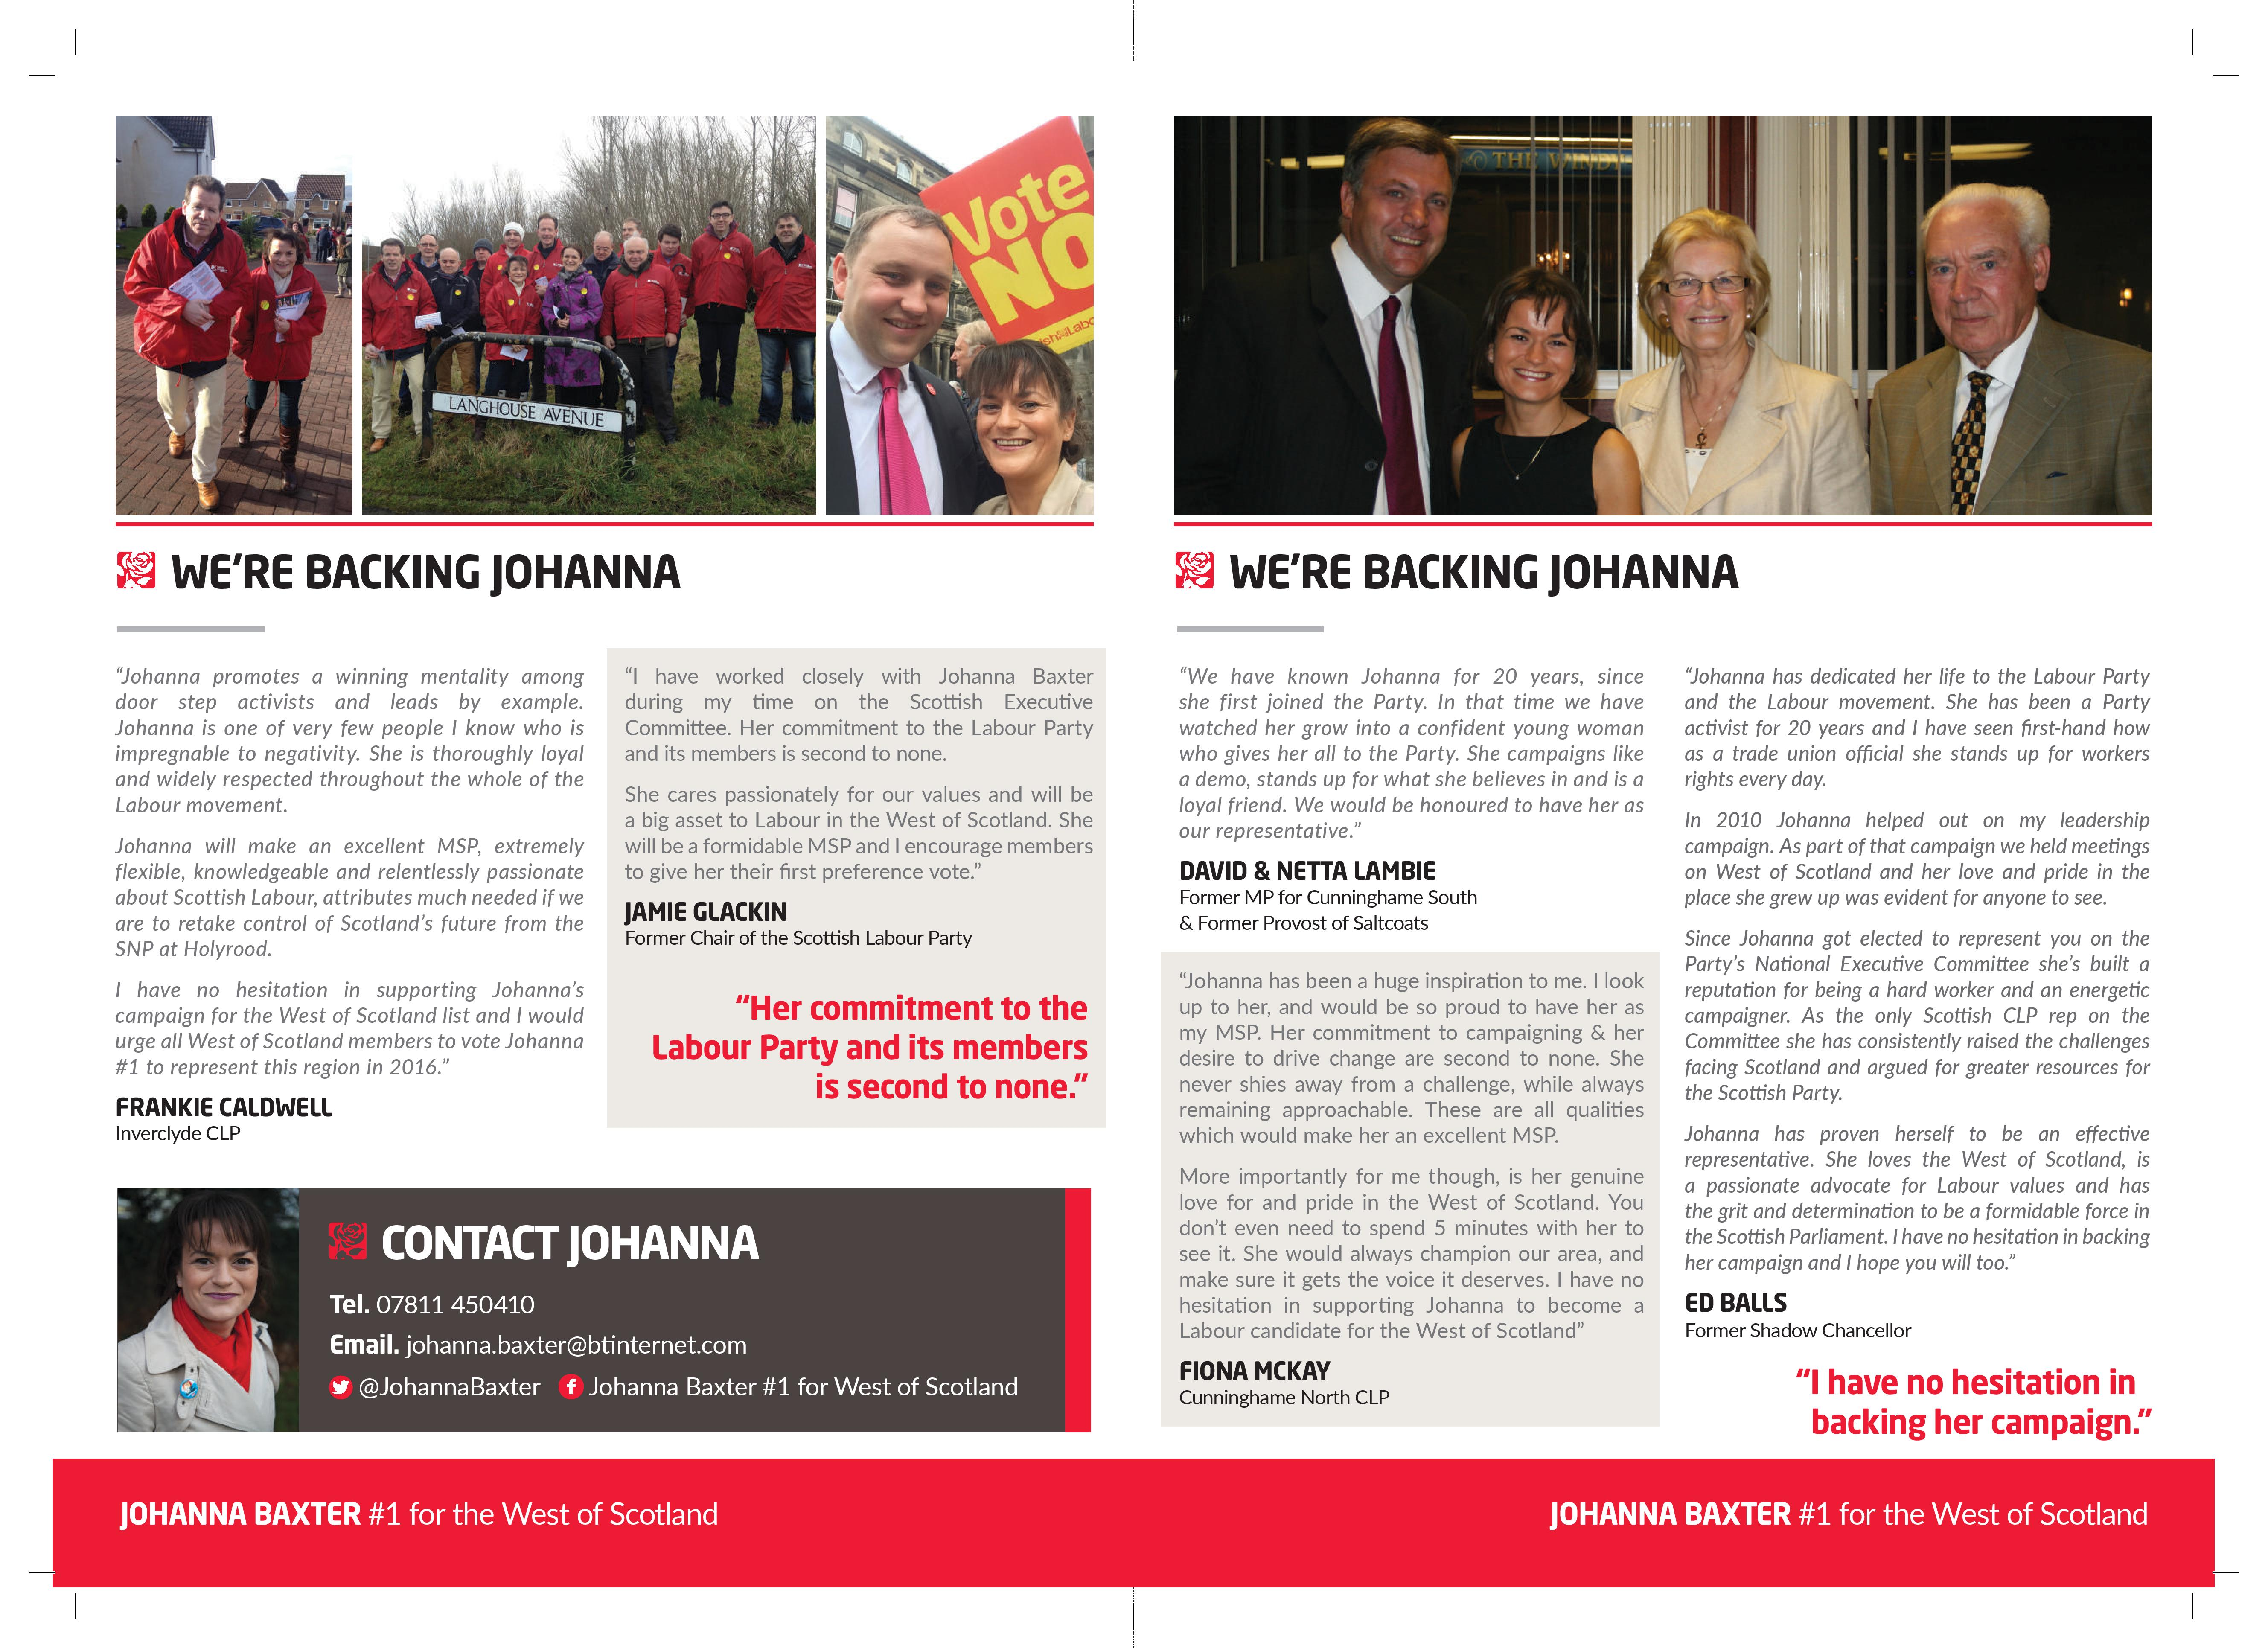 DB0014_-_Johanna_Baxter_-_A4_4pp_Leaflet_-_HIGH_RES_NEW_21.12.15.compressed-page-002.jpg